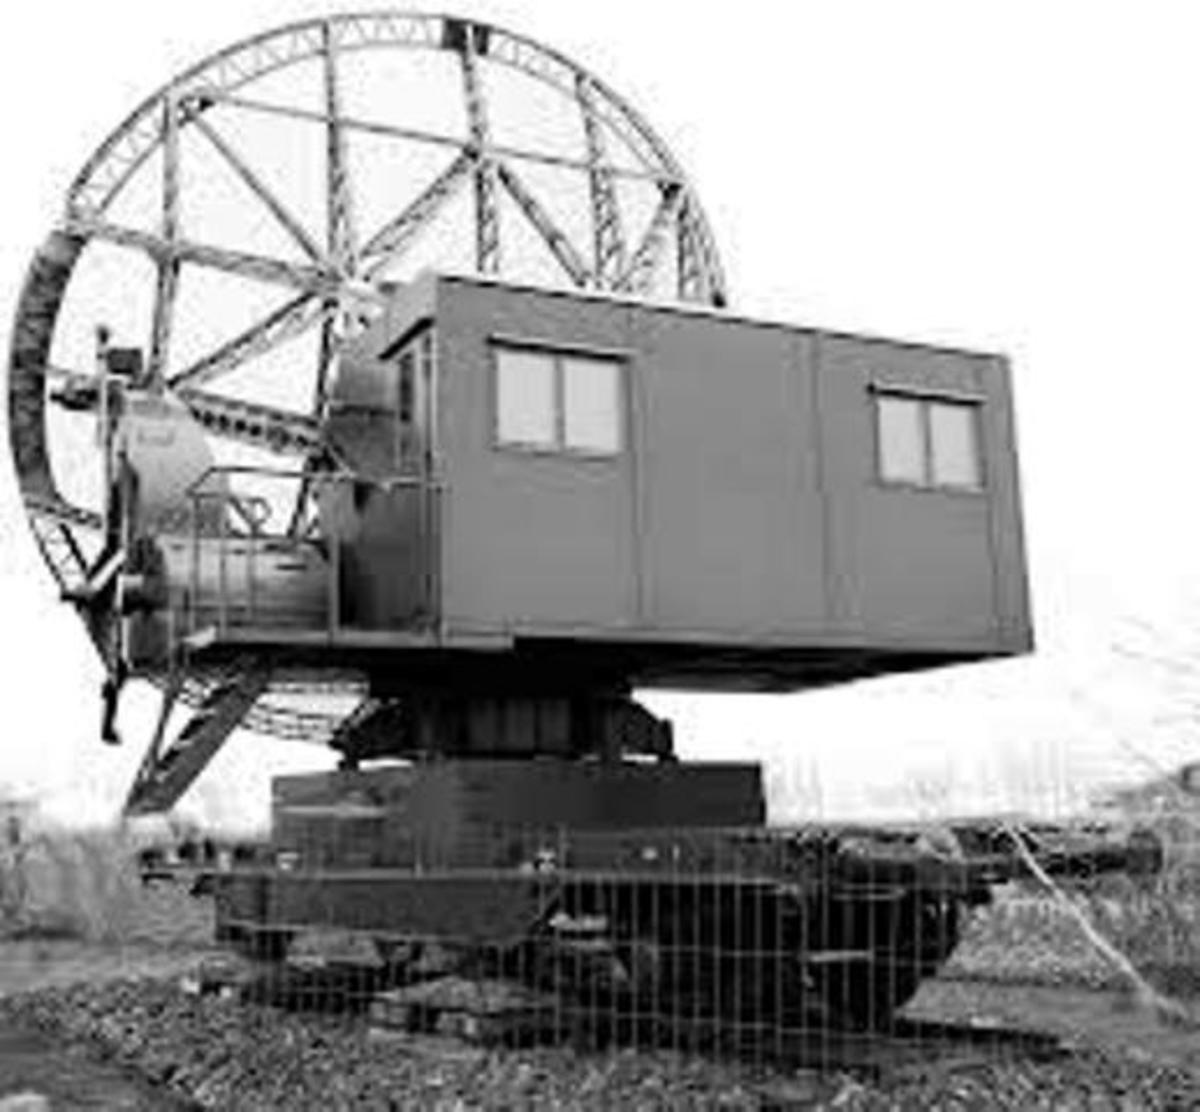 The German Wirzburg radar system that was of interest to British intelligence and technological services - it would be the target of the Bruneval commando raid, at the time of the Dieppe raid